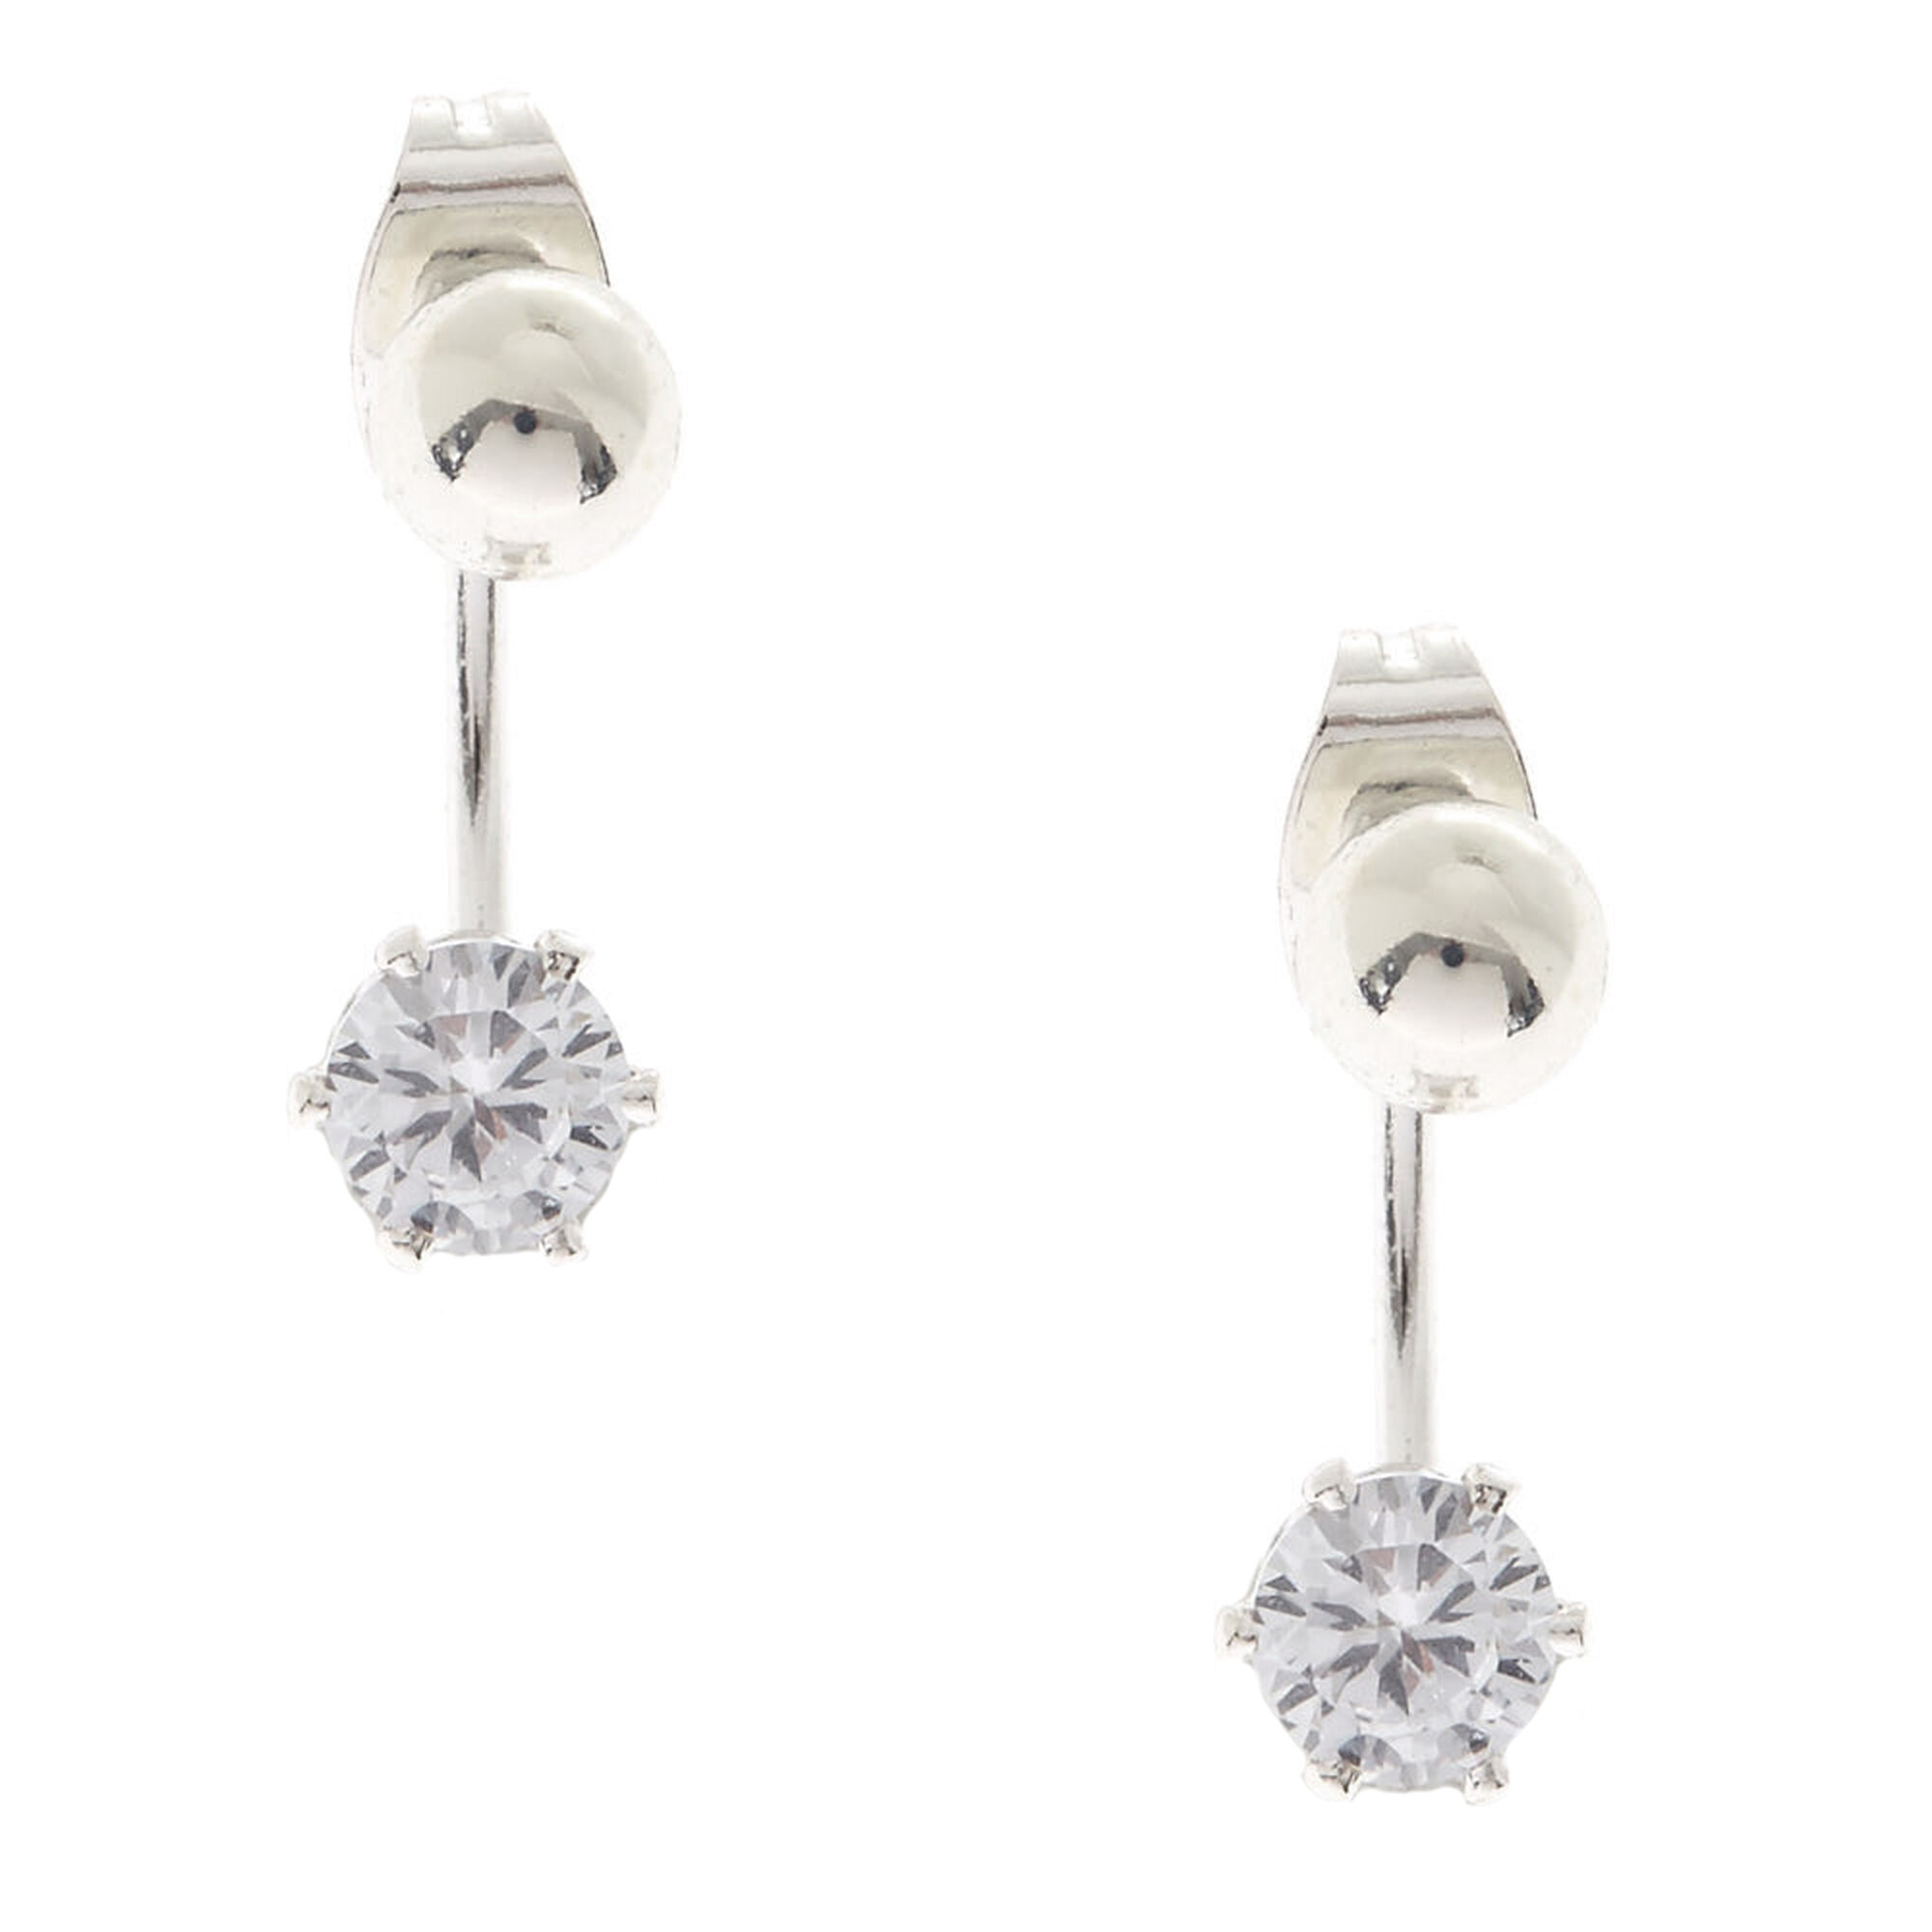 e83acd30c Silver Ball Stud with Round Cubic Zirconia Front & Back Earrings, ...